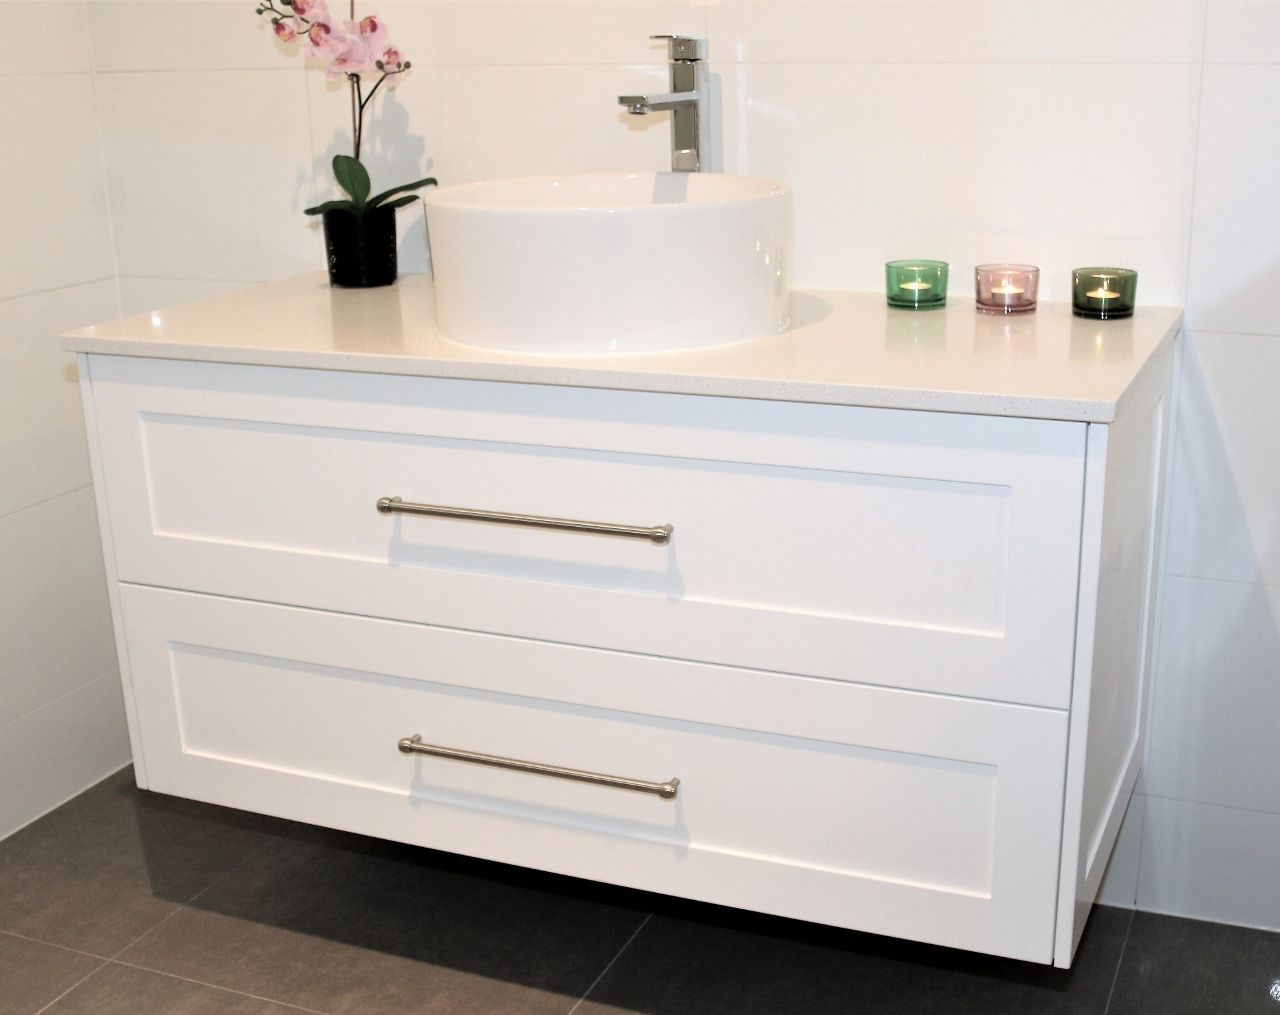 1200 Lucca wall hung vanity in shaker style panel with Snow Caesarstone top   shaker. 1200 Lucca wall hung vanity in shaker style panel with Snow